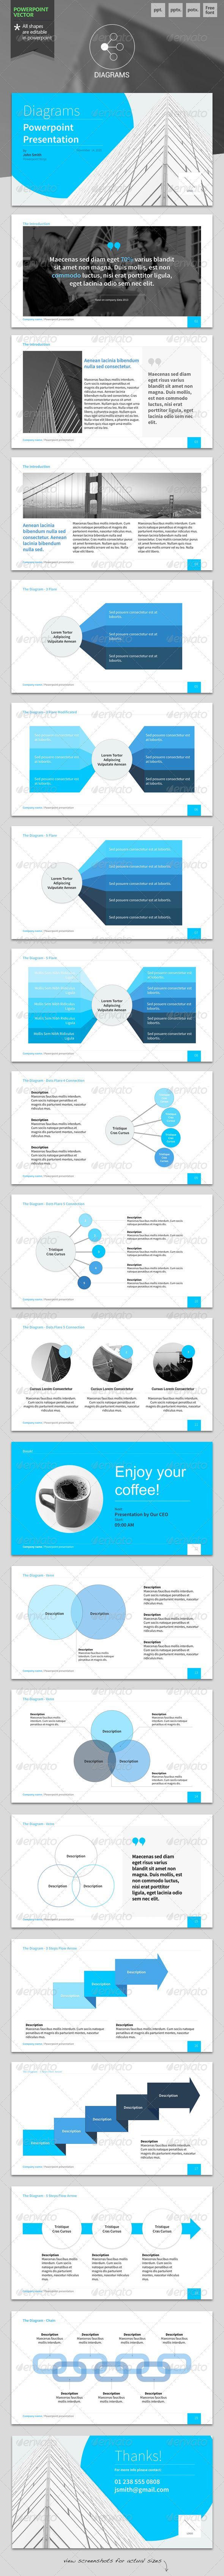 Free presentation templates for Powerpoint amp Google Slides